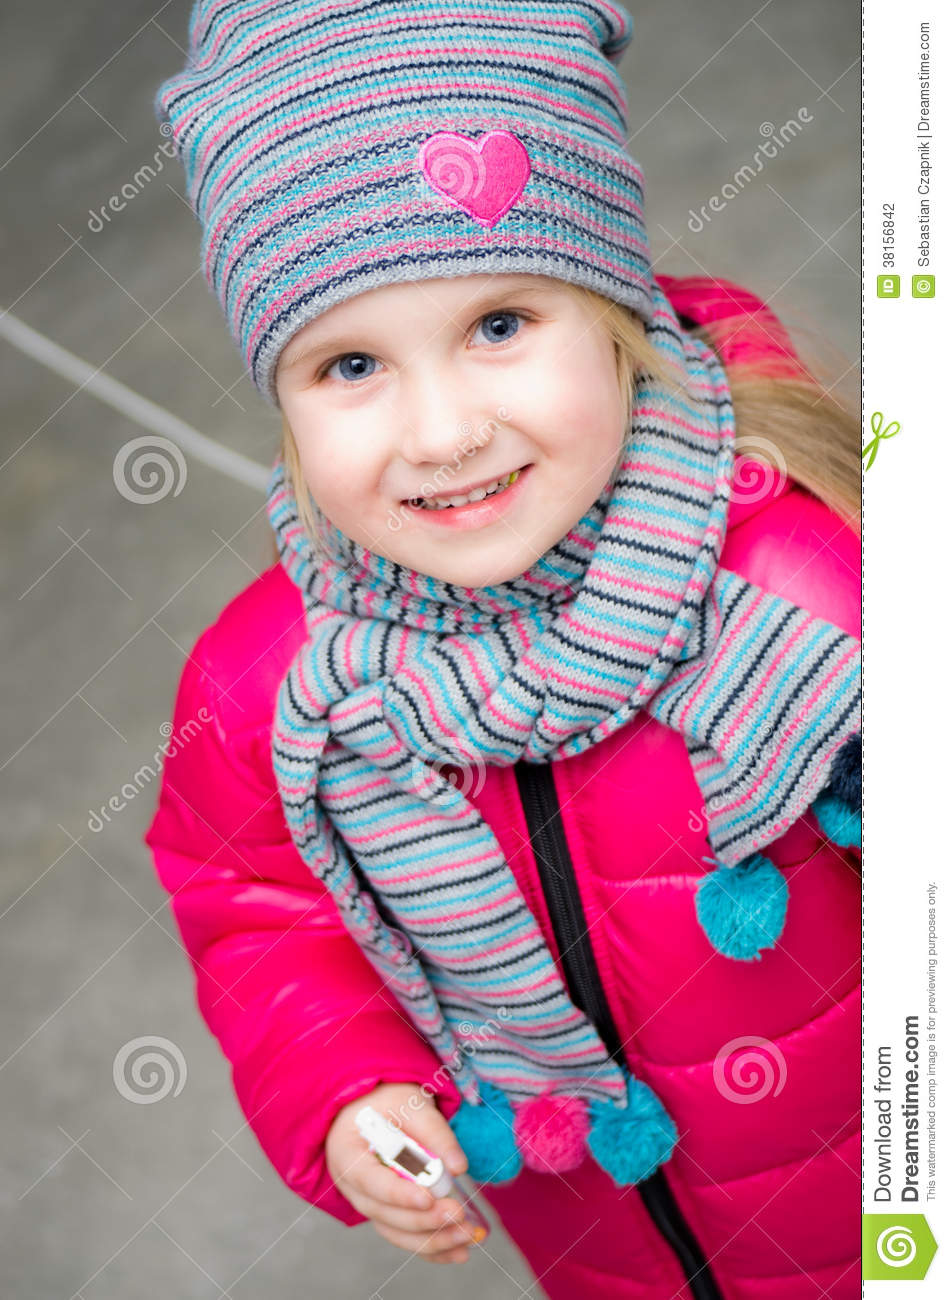 Adorable Four Year Boy With Big Blue Eyes Stock Image: Winter Clothes Little Girl Portrait Stock Photography